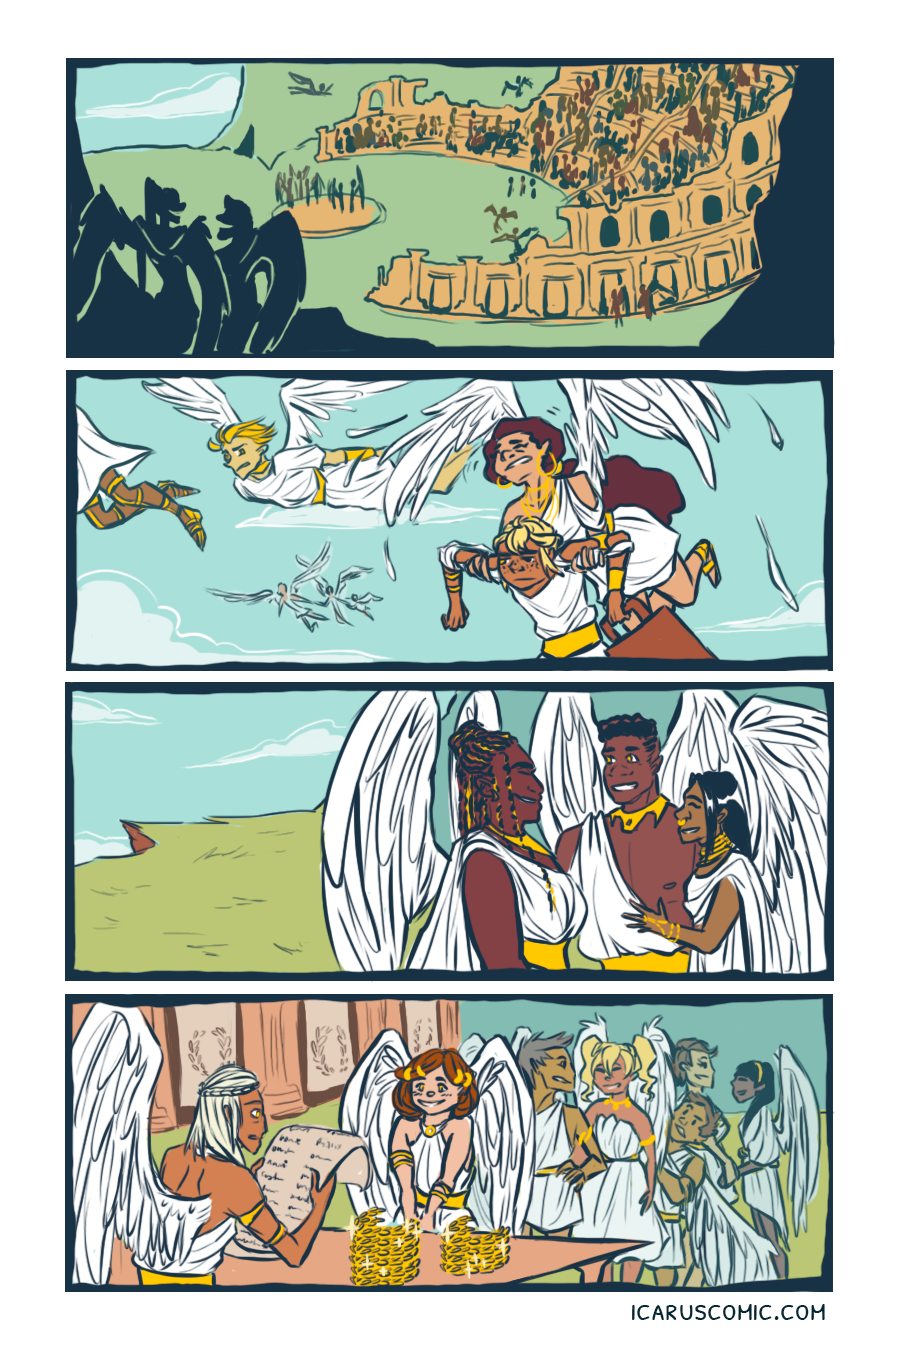 icarus v2 p1.png